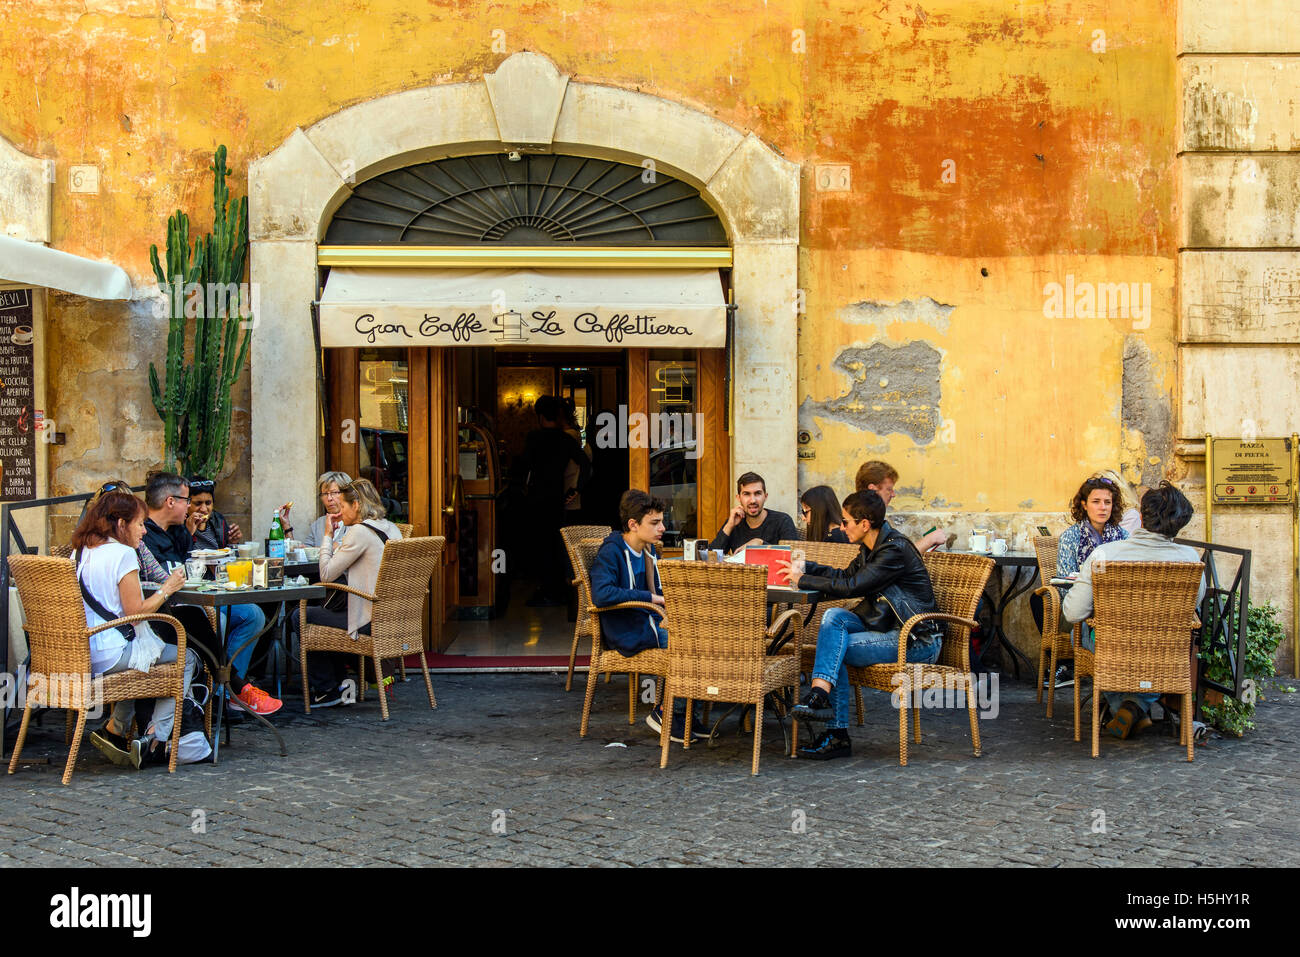 Tourists dining al fresco in a pizzeria restaurant of Rome, Lazio, Italy - Stock Image